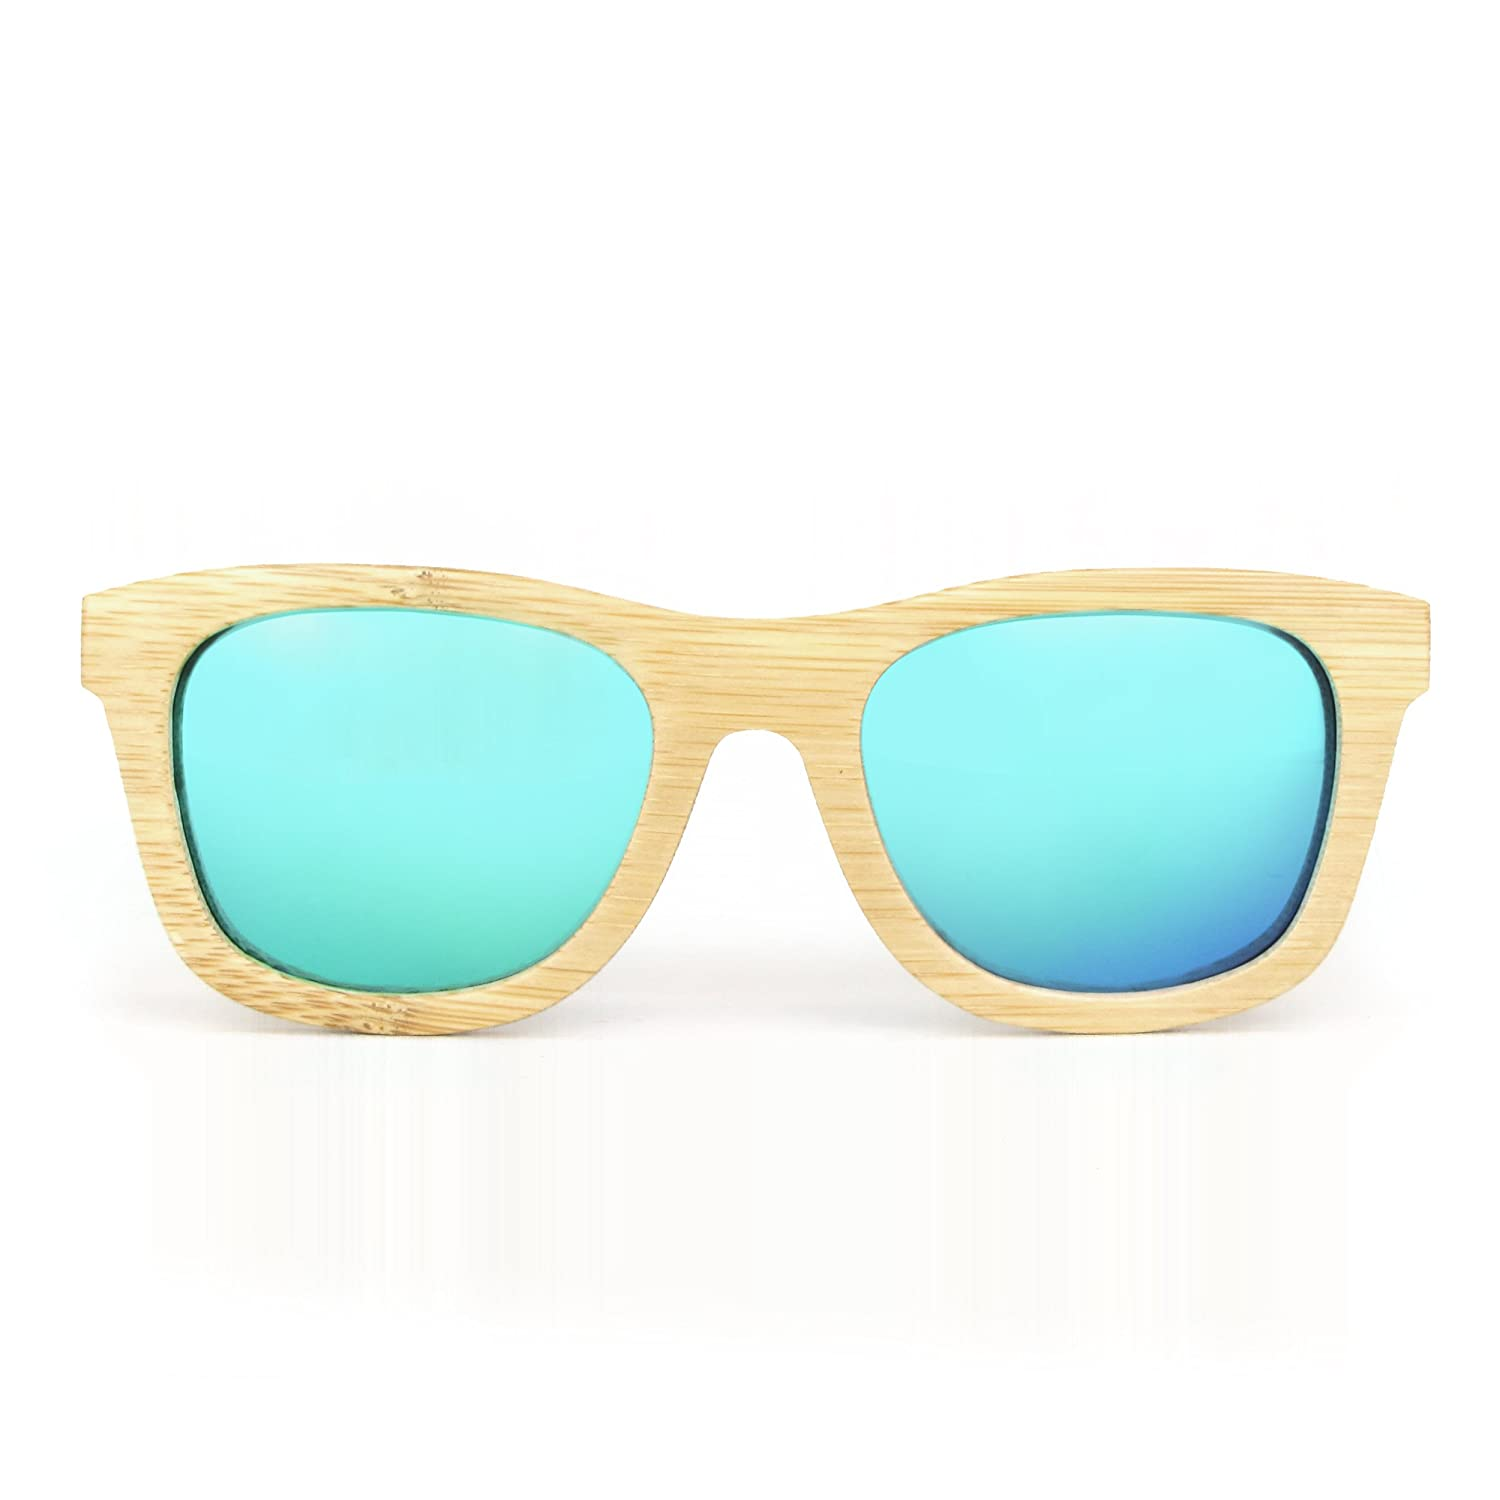 64514a11c31 Amazon.com  Wood Sunglasses for Men and Women - Polarized Bamboo Wayfarer  with Wooden Case  Clothing